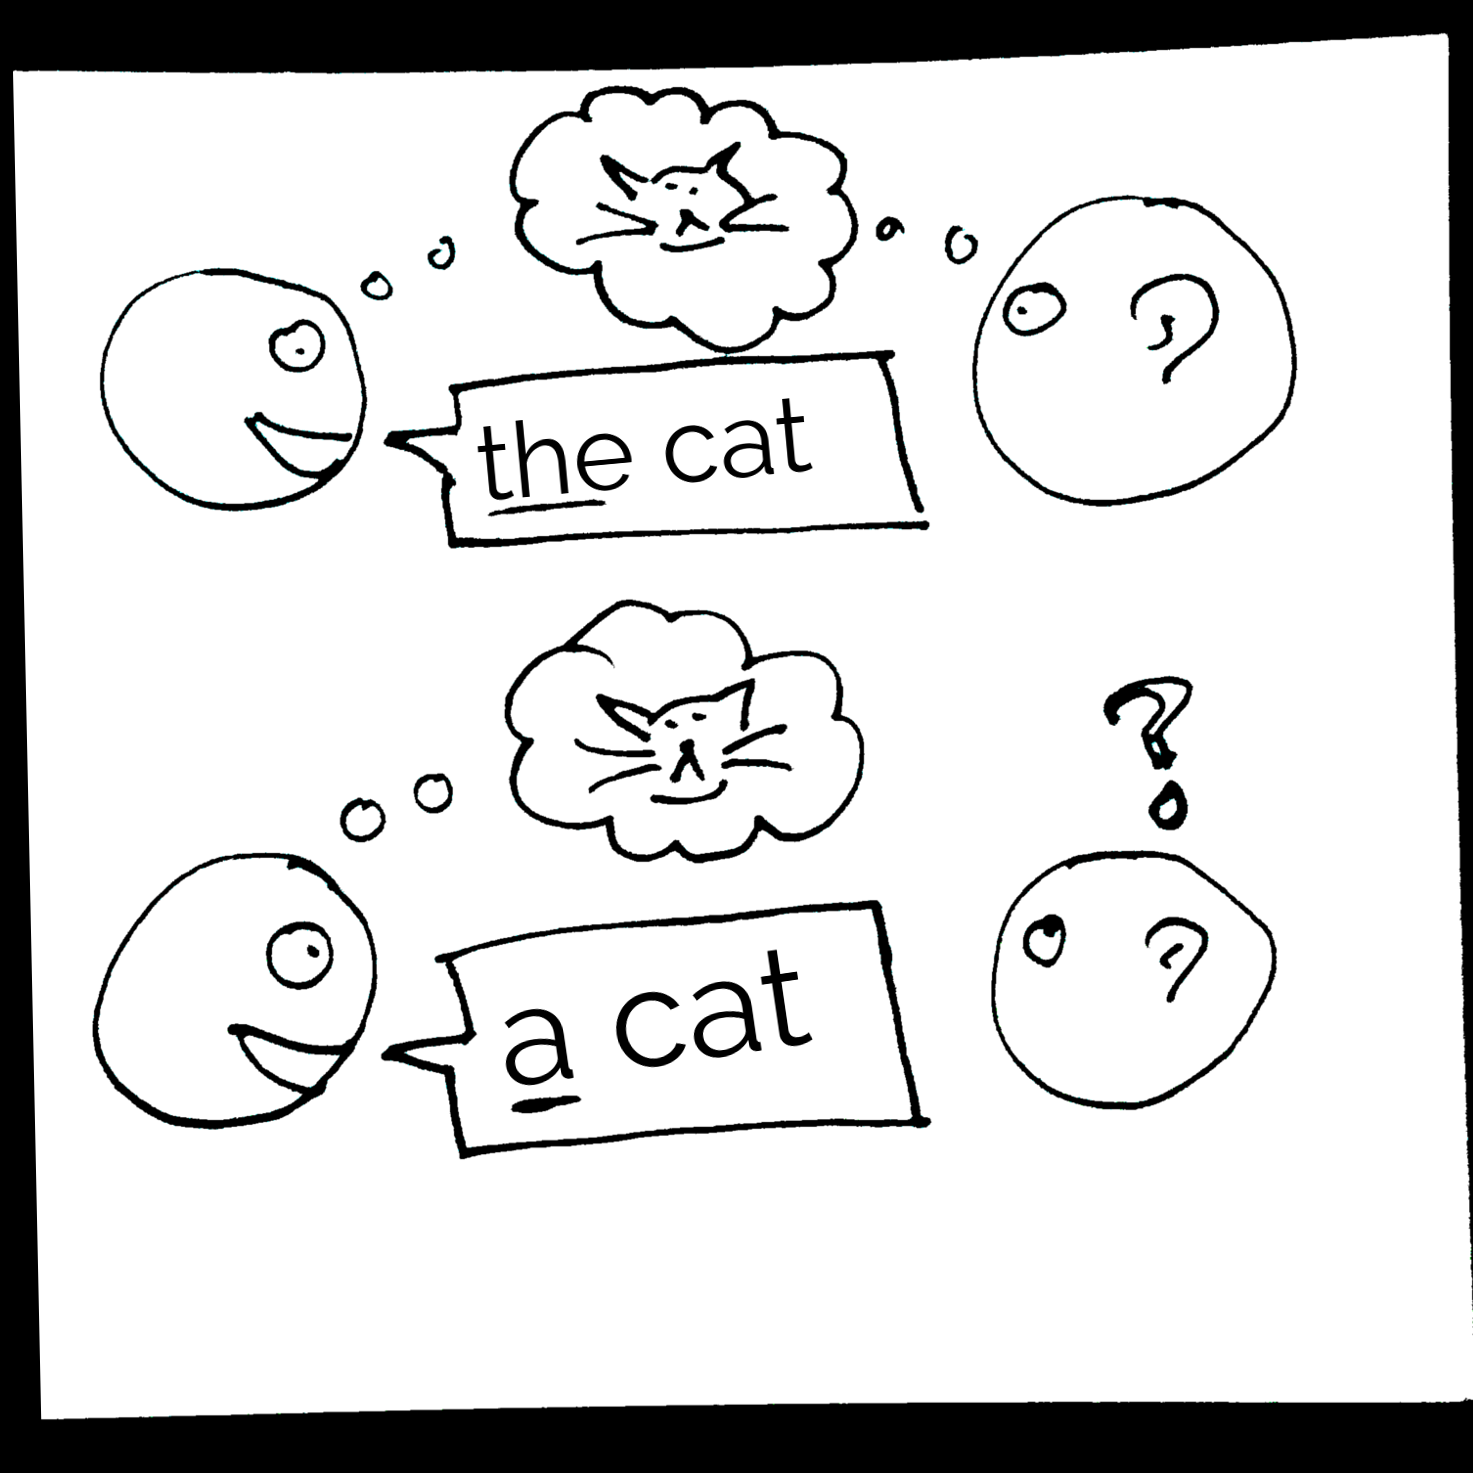 """Two stick figures talking to each other. In the first panel, the speaking says """"the cat."""" Above their heads, there is a thought bubble connected to both people with a picture of a cat. In the second panel, the speaker is saying """"a cat."""" There is the same thought bubble, but it is only connect to the speaker. The listener has a question mark above her head."""